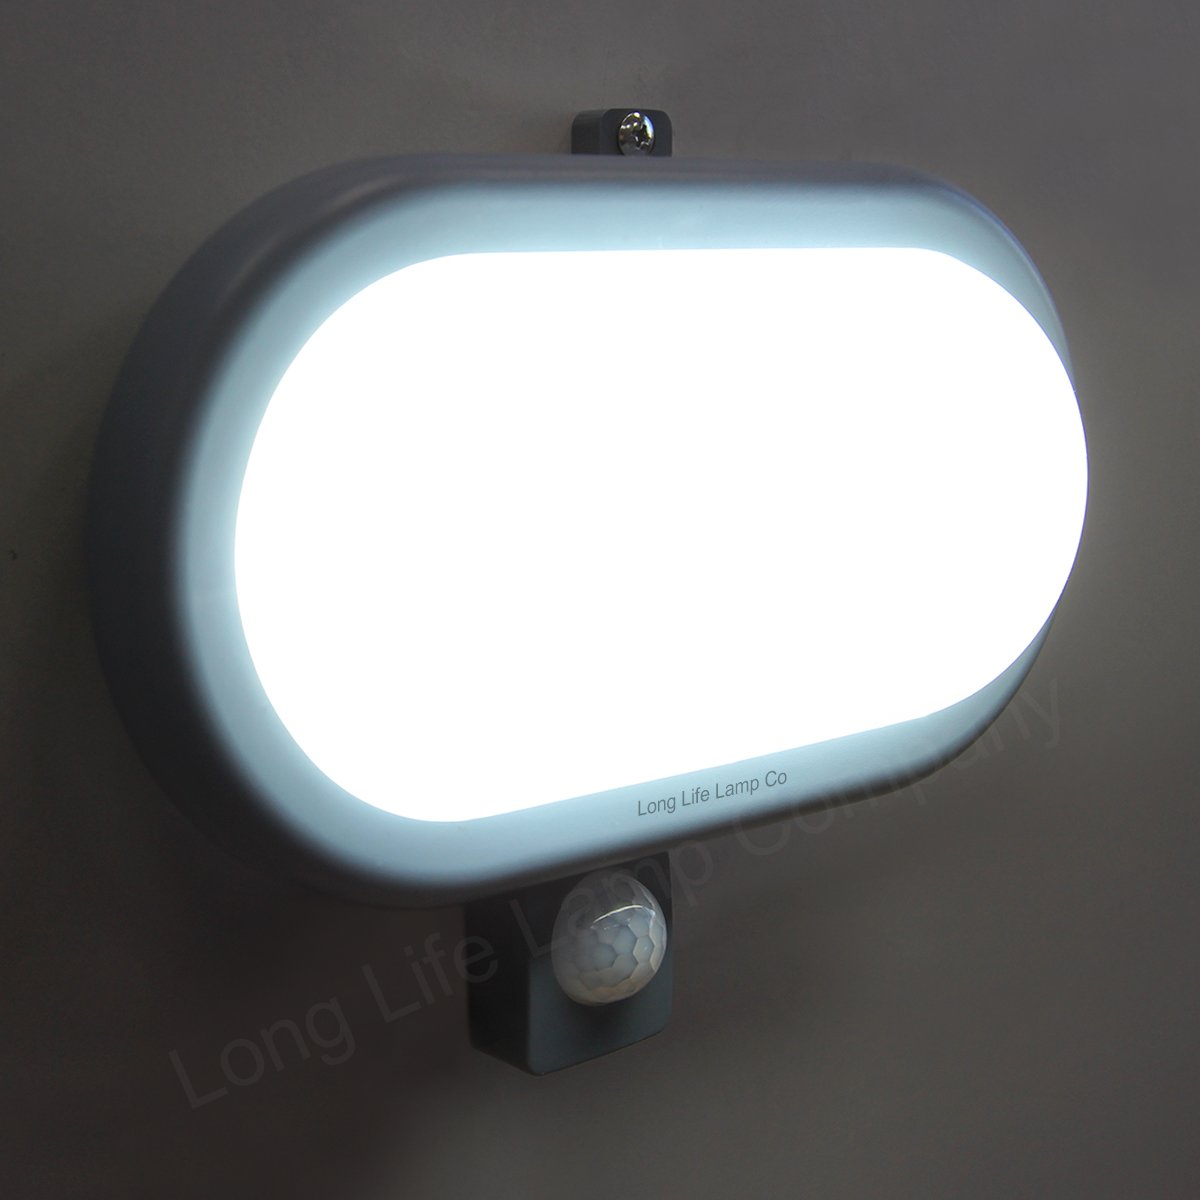 pir movement sensor 10w led bulkhead light outdoor. Black Bedroom Furniture Sets. Home Design Ideas